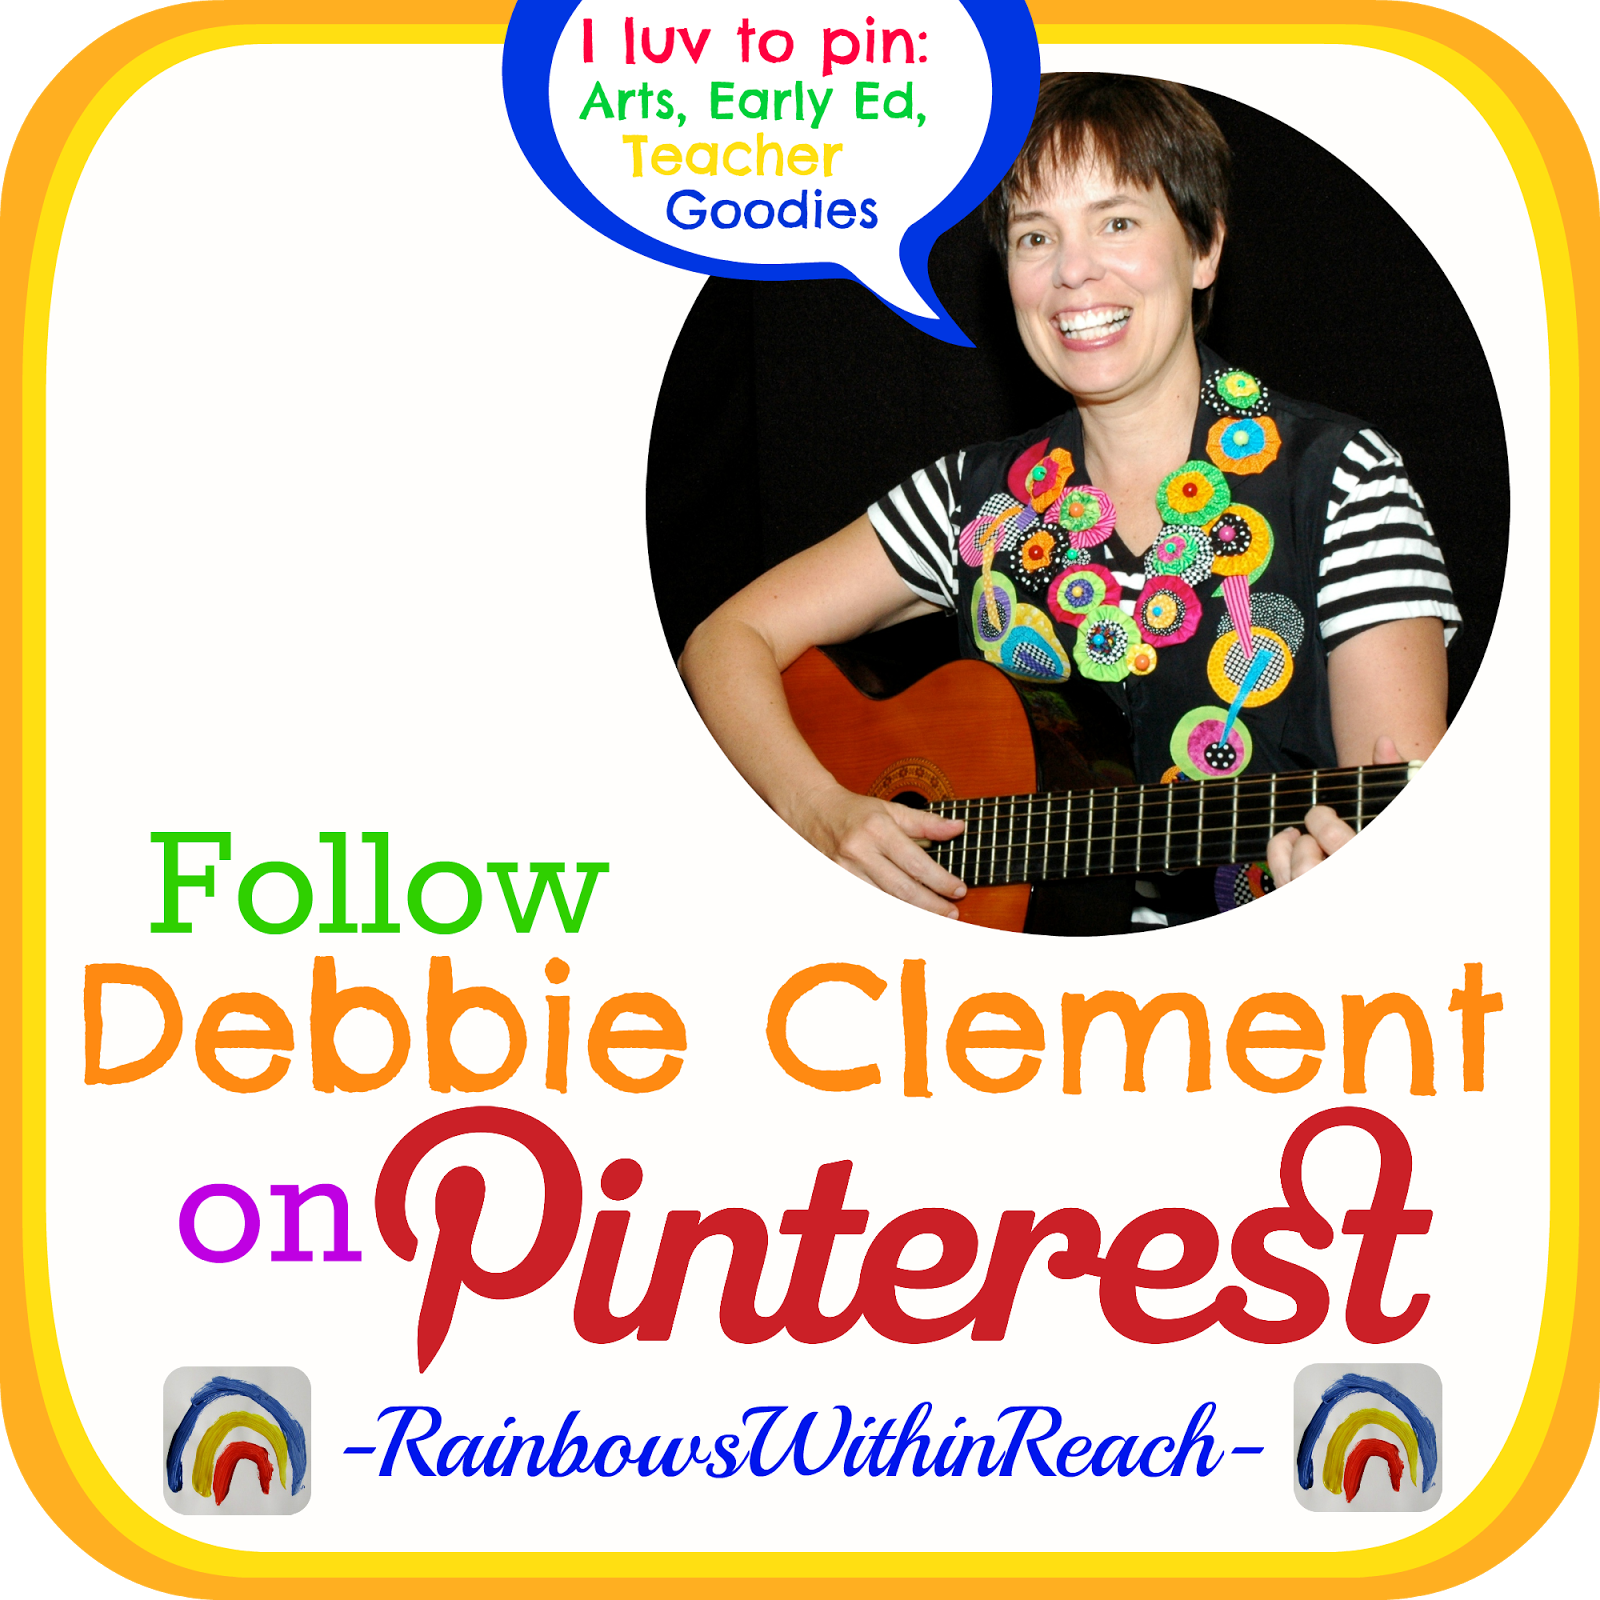 Follow Debbie Clement on Pinterest!